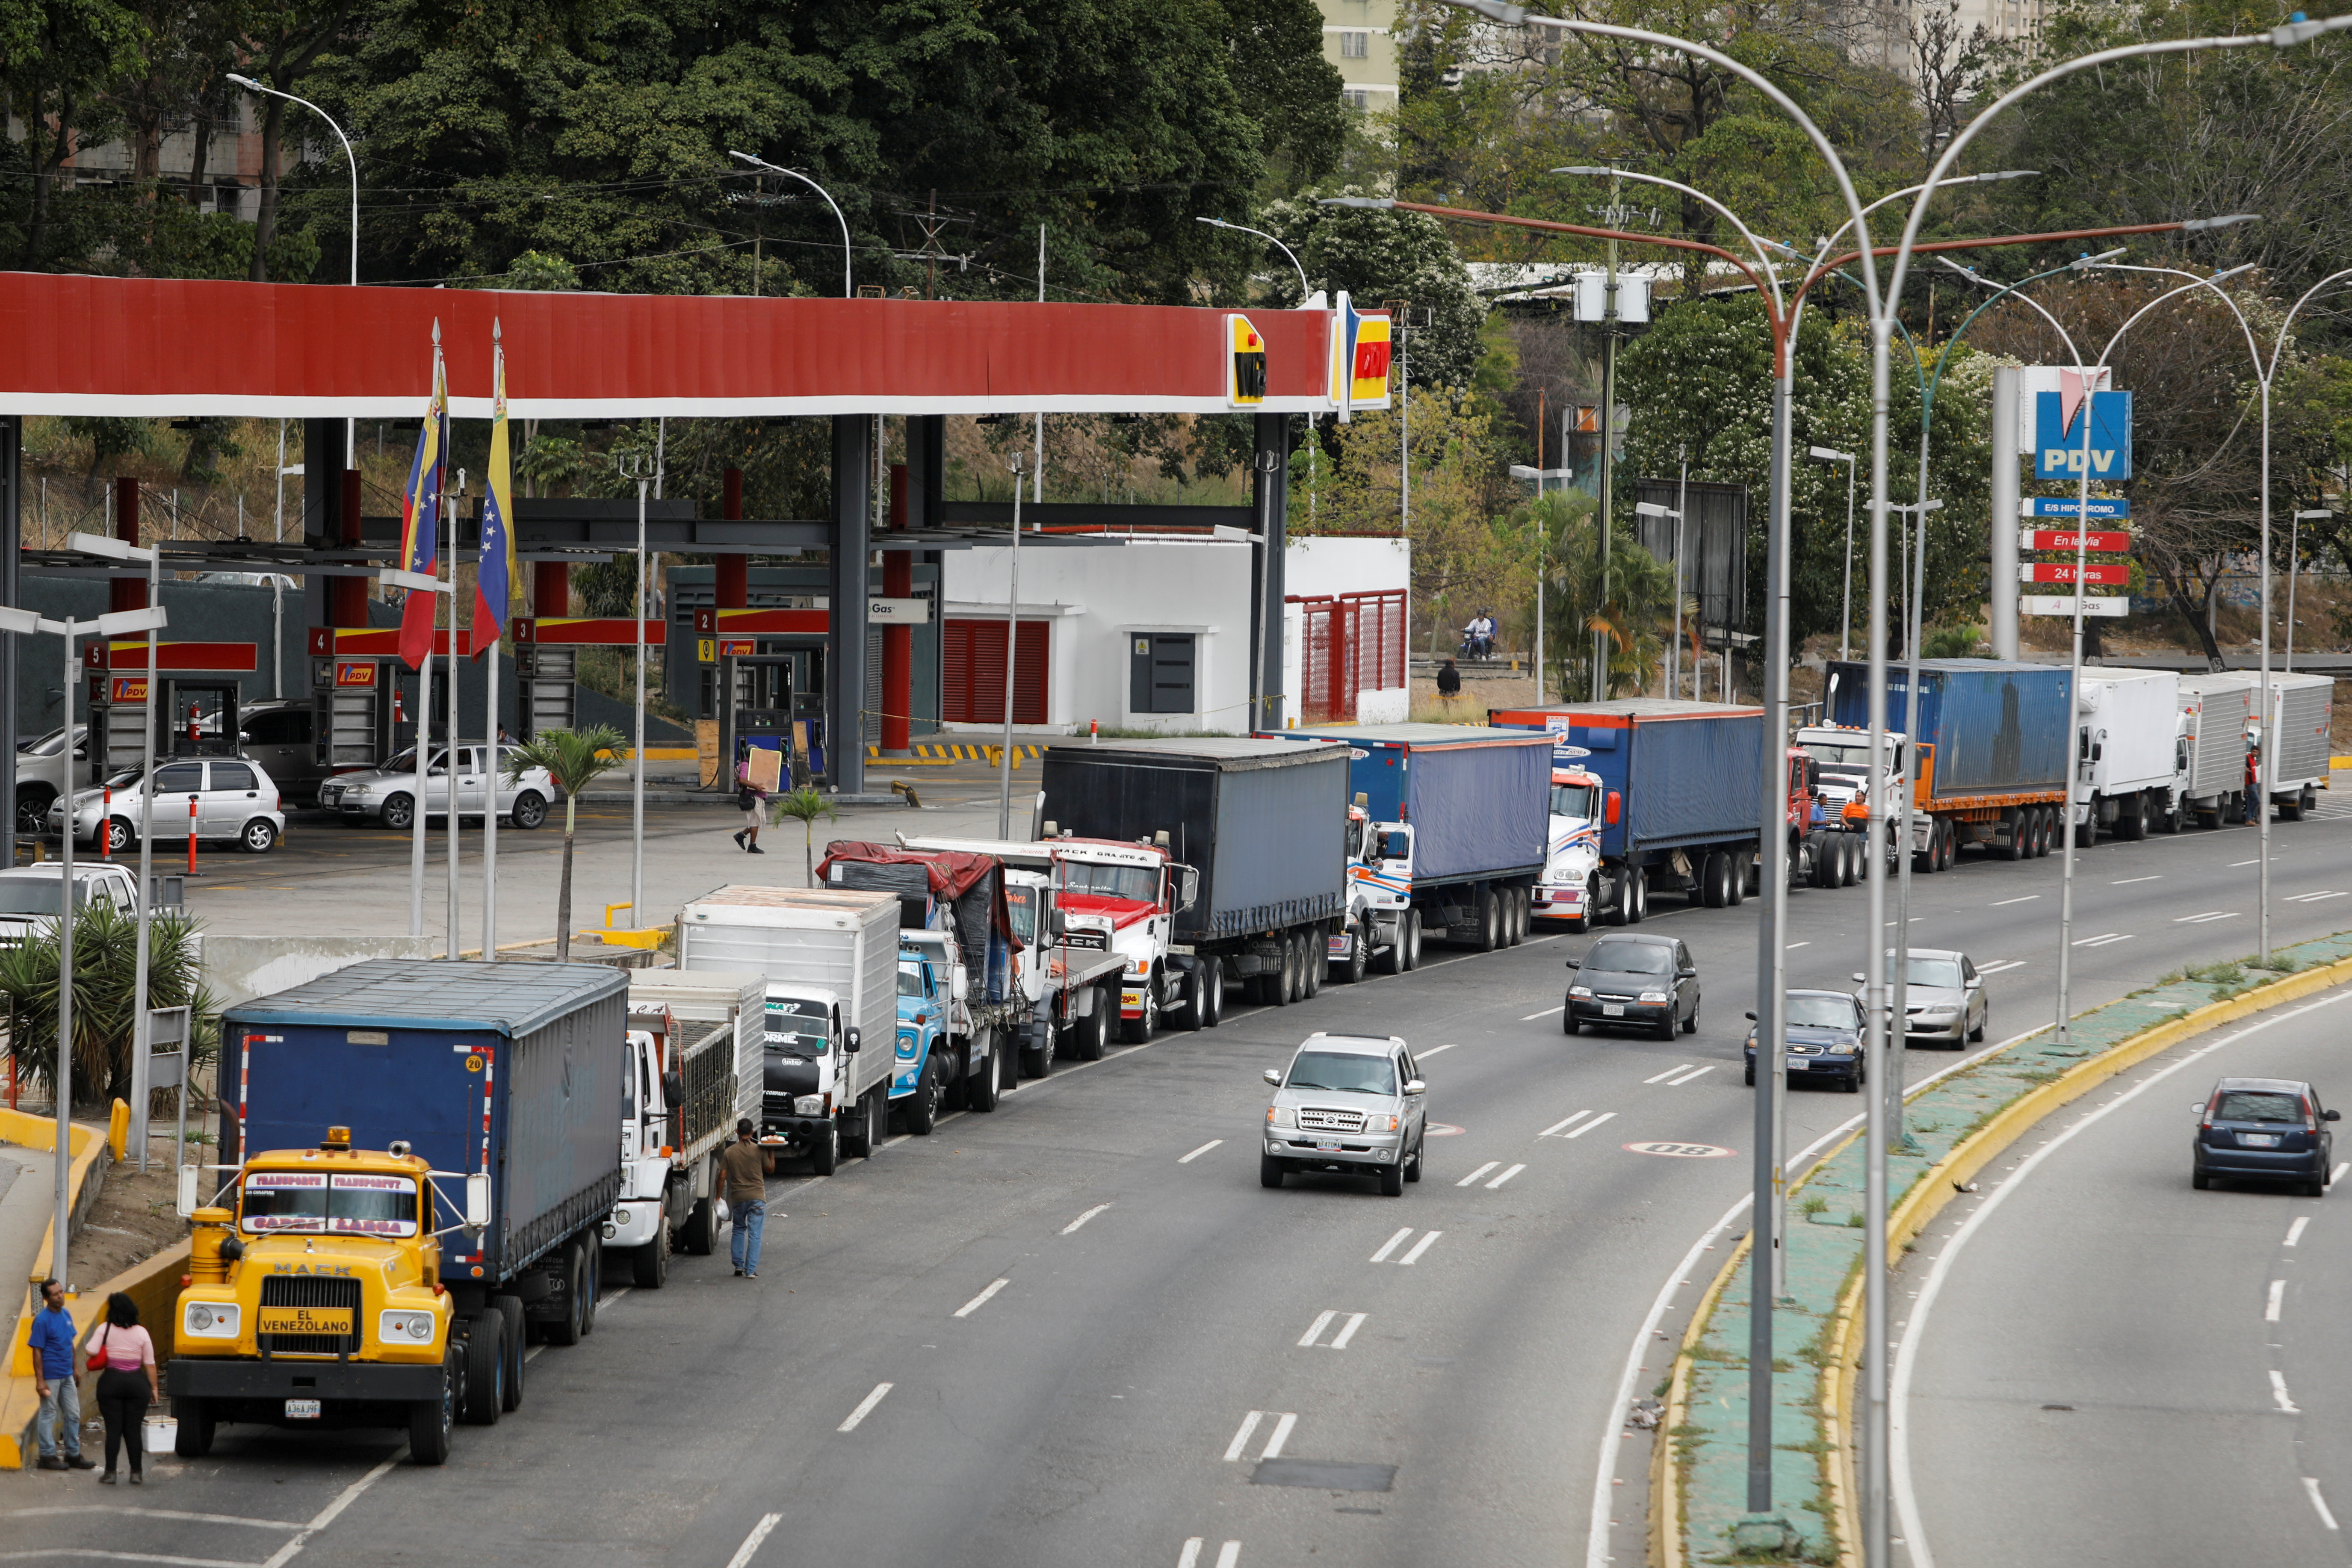 Trailer trucks line up along an avenue to fill up their tanks at a gas station as part of a growing diesel shortage, in Caracas, Venezuela March 5, 2021. REUTERS/Leonardo Fernandez Viloria